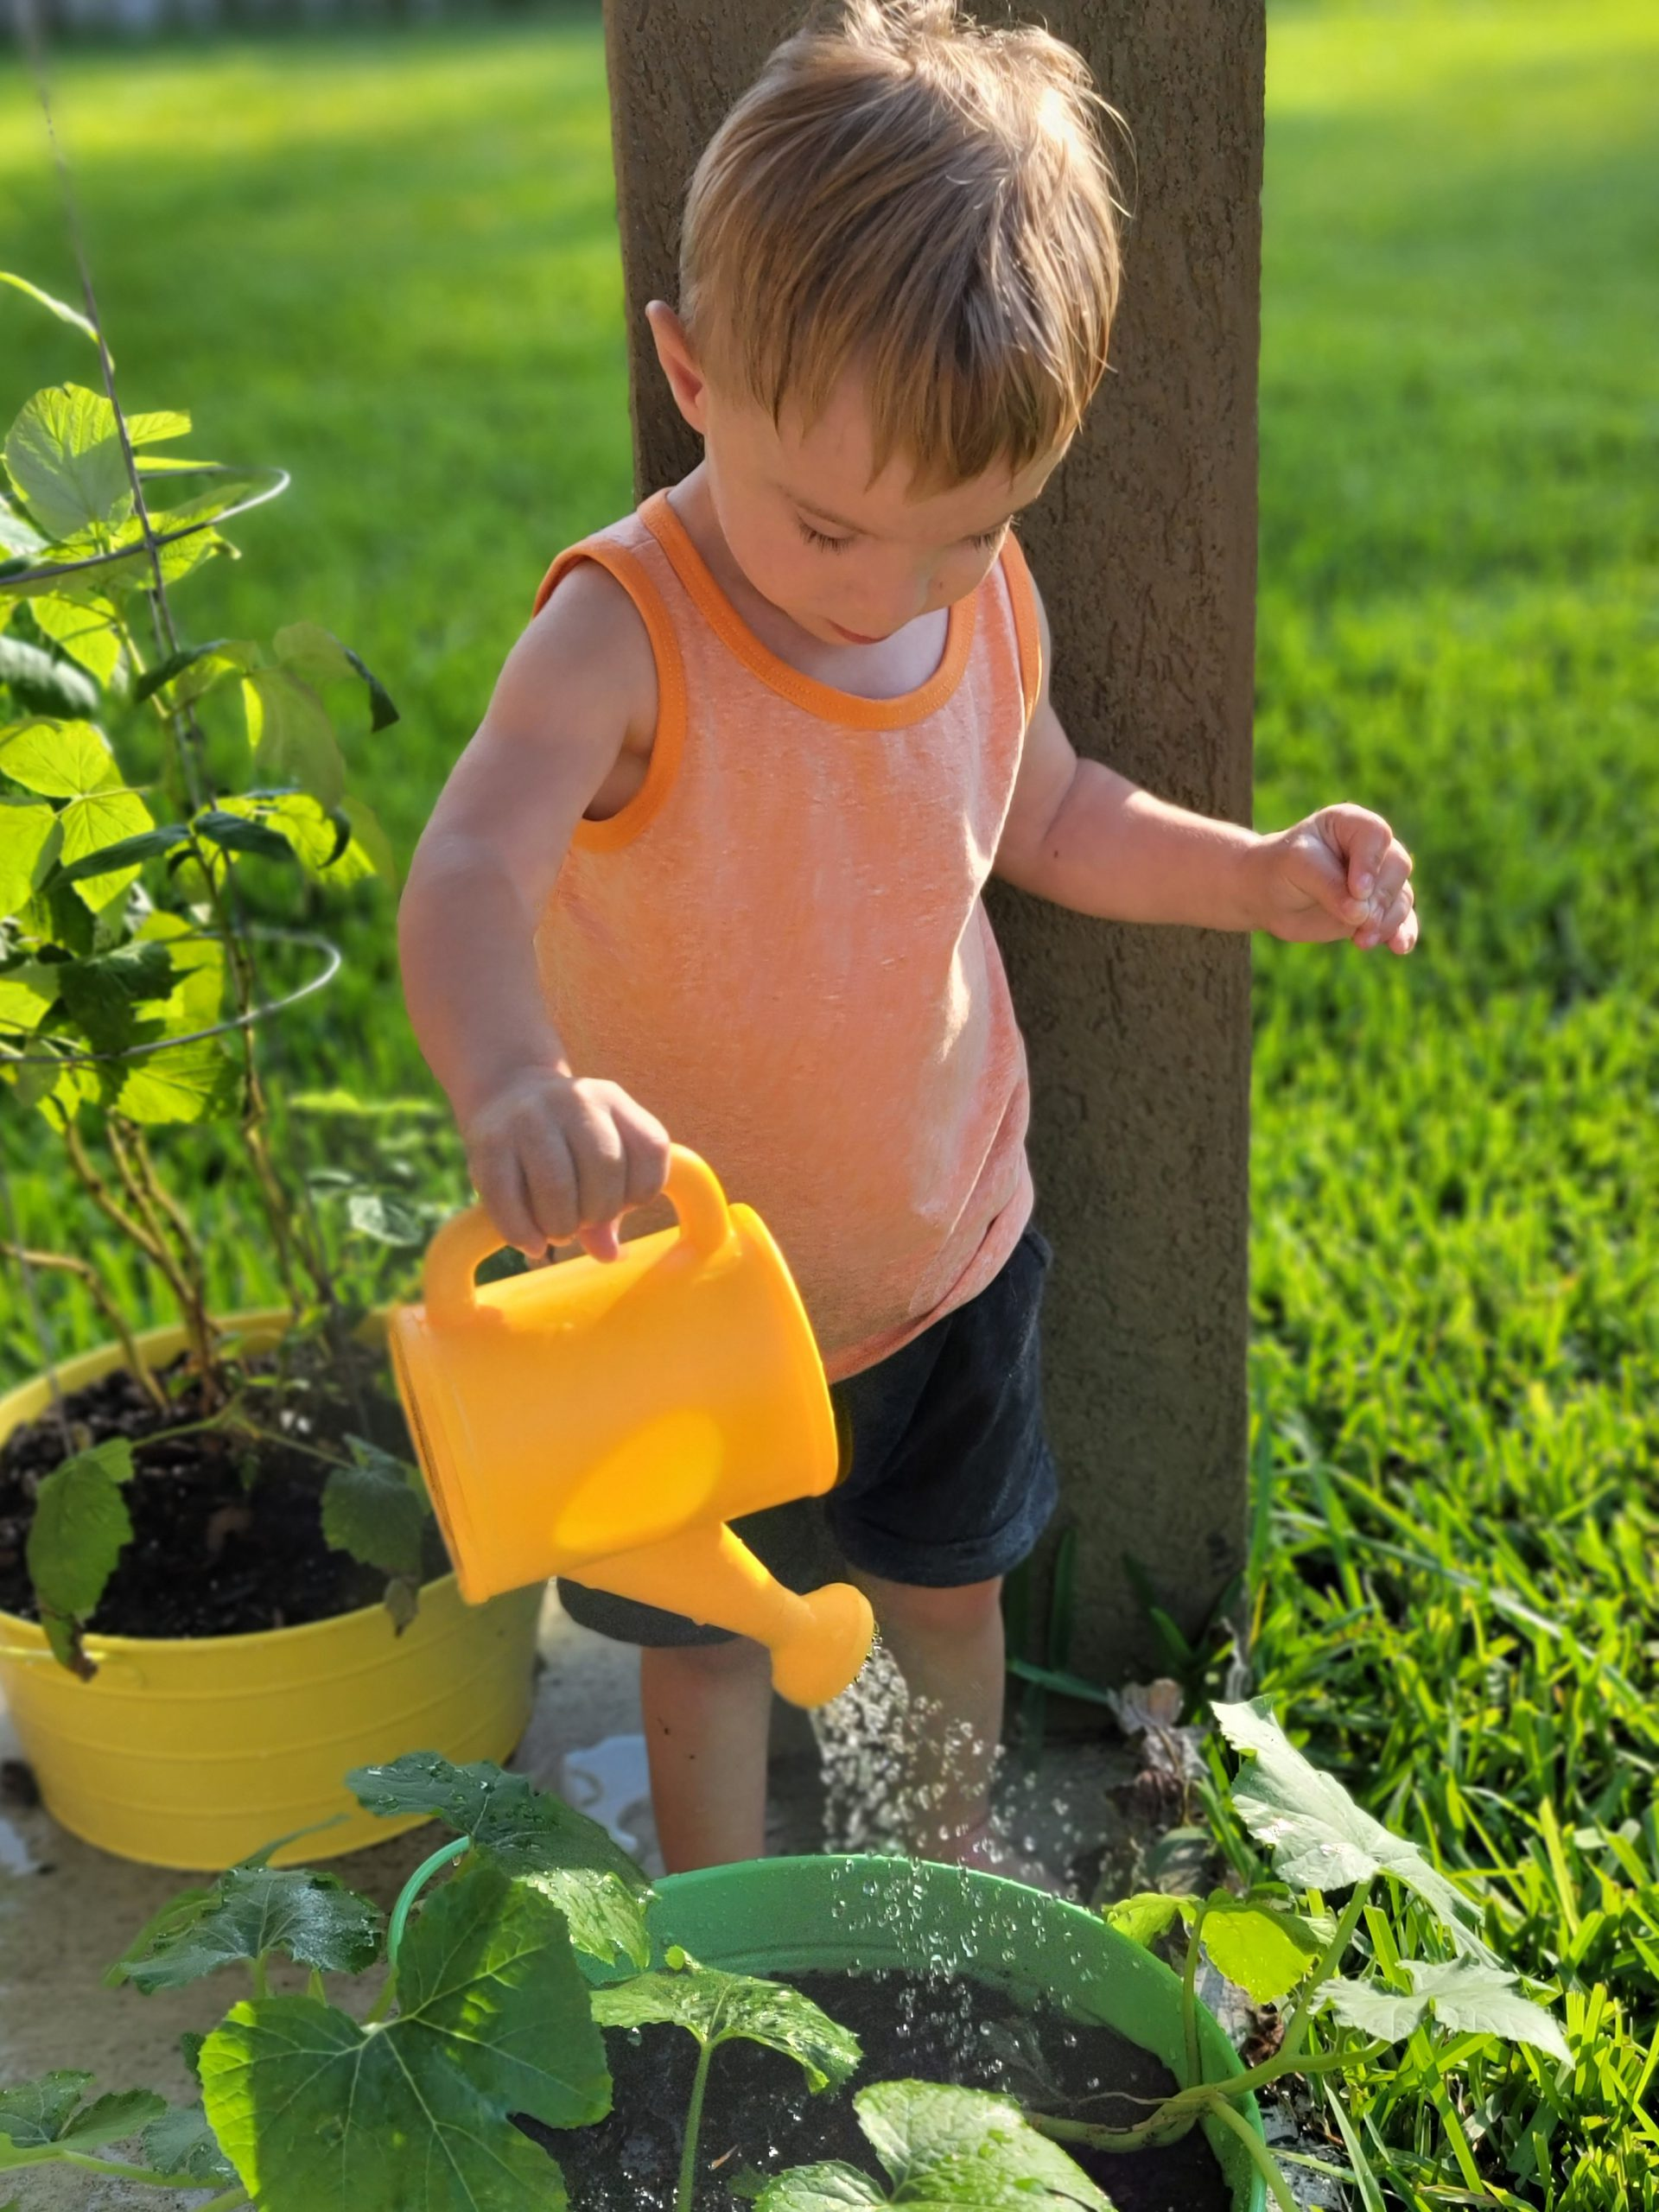 Growth and Gardening